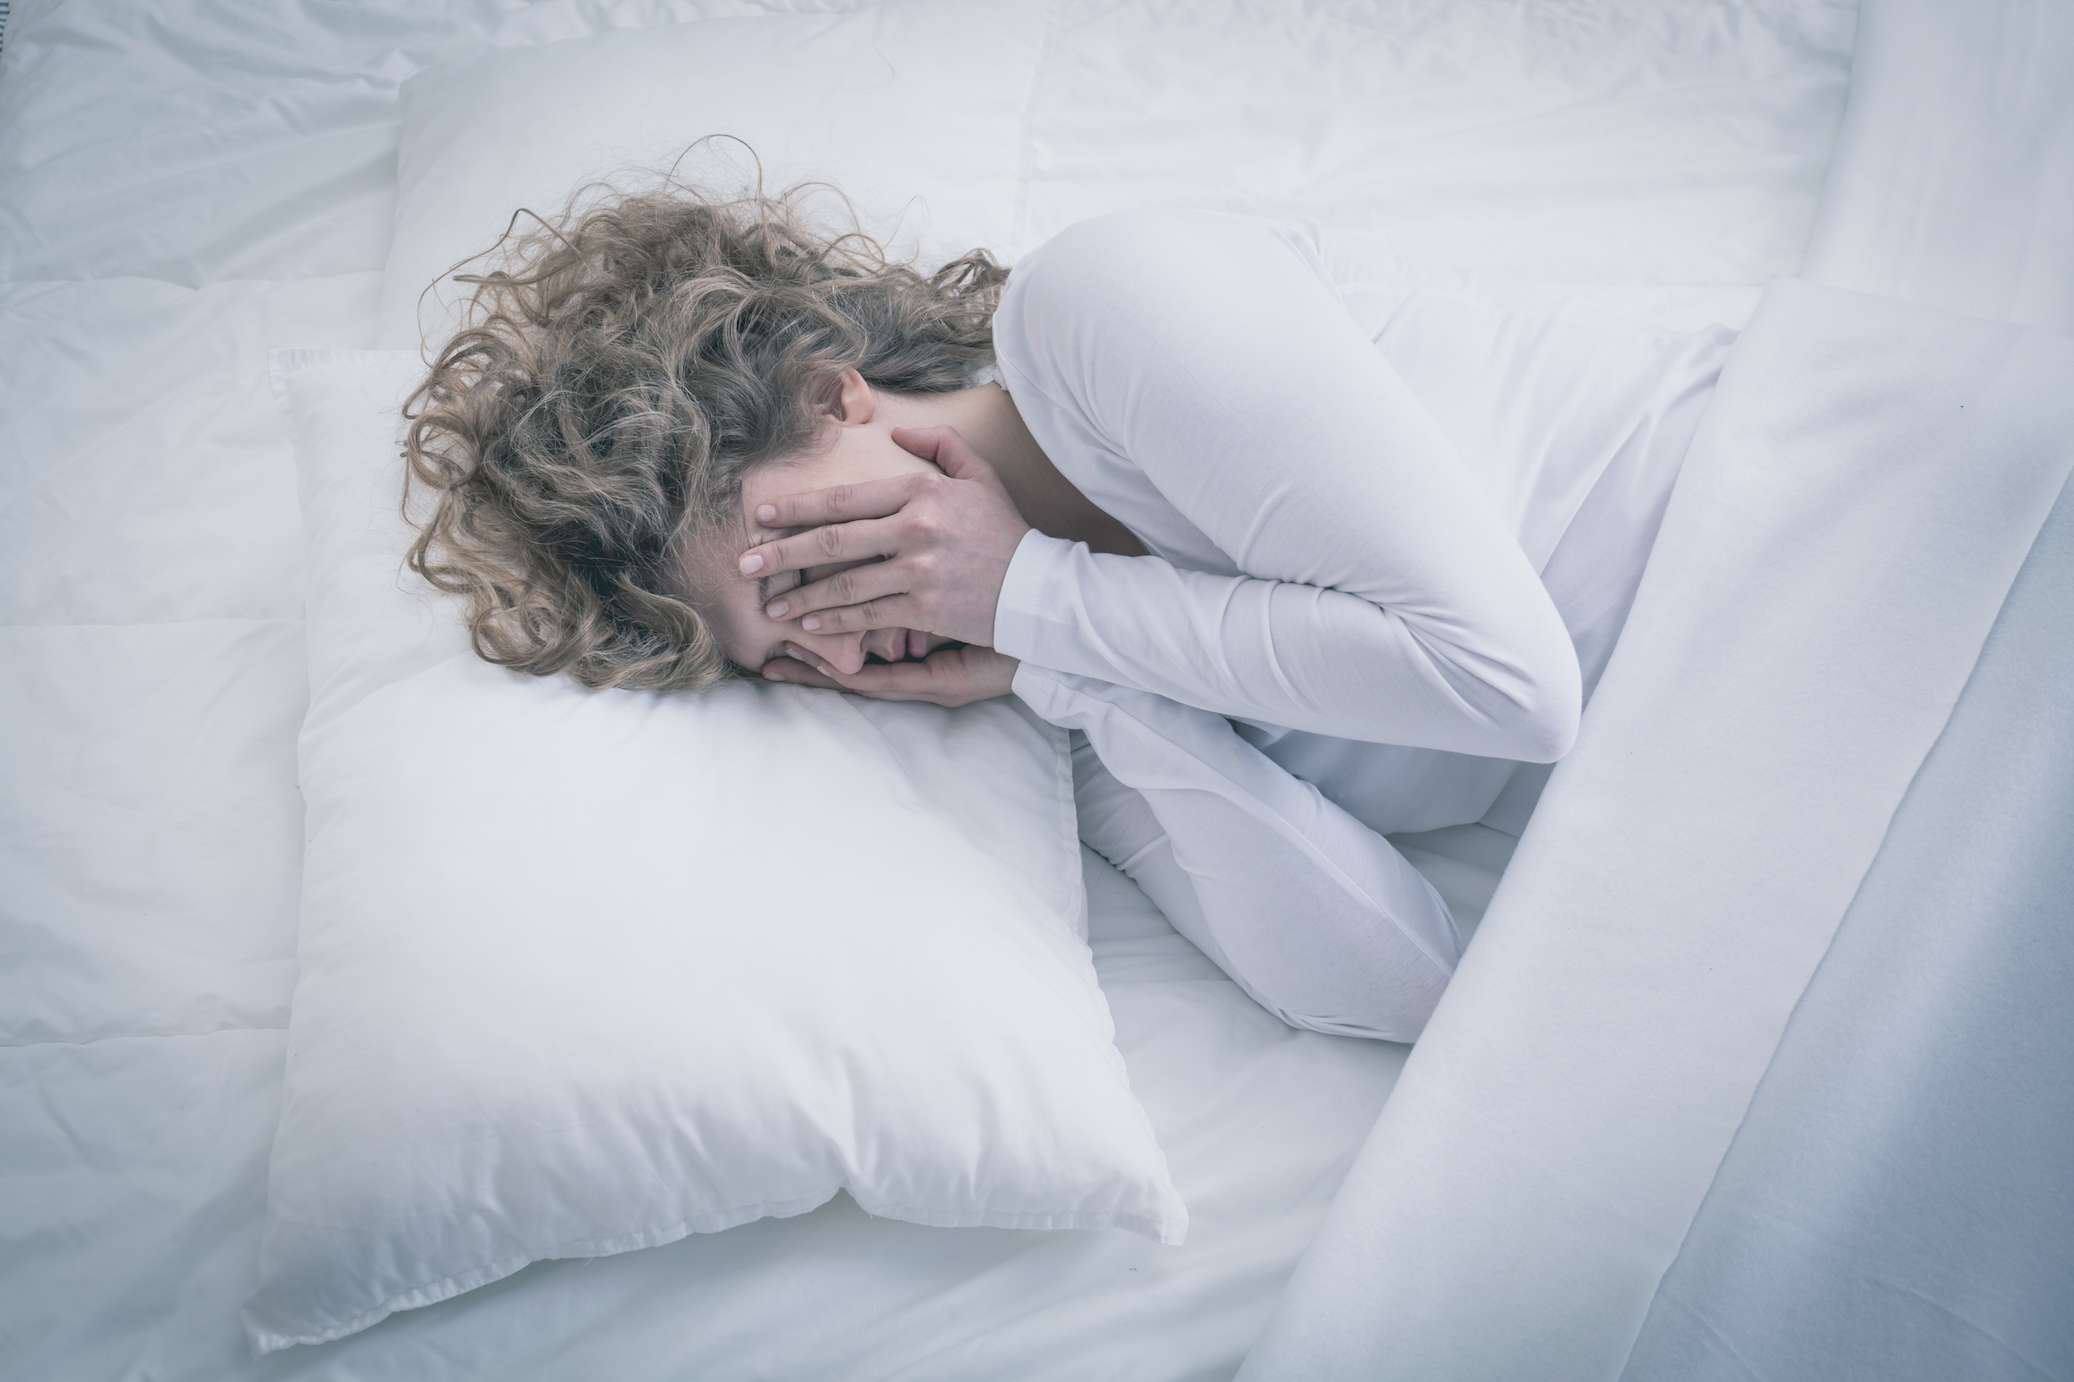 People who are genetically susceptible to Alzheimer's disease also face a greater risk of lower cognition from sleep-disordered breathing.